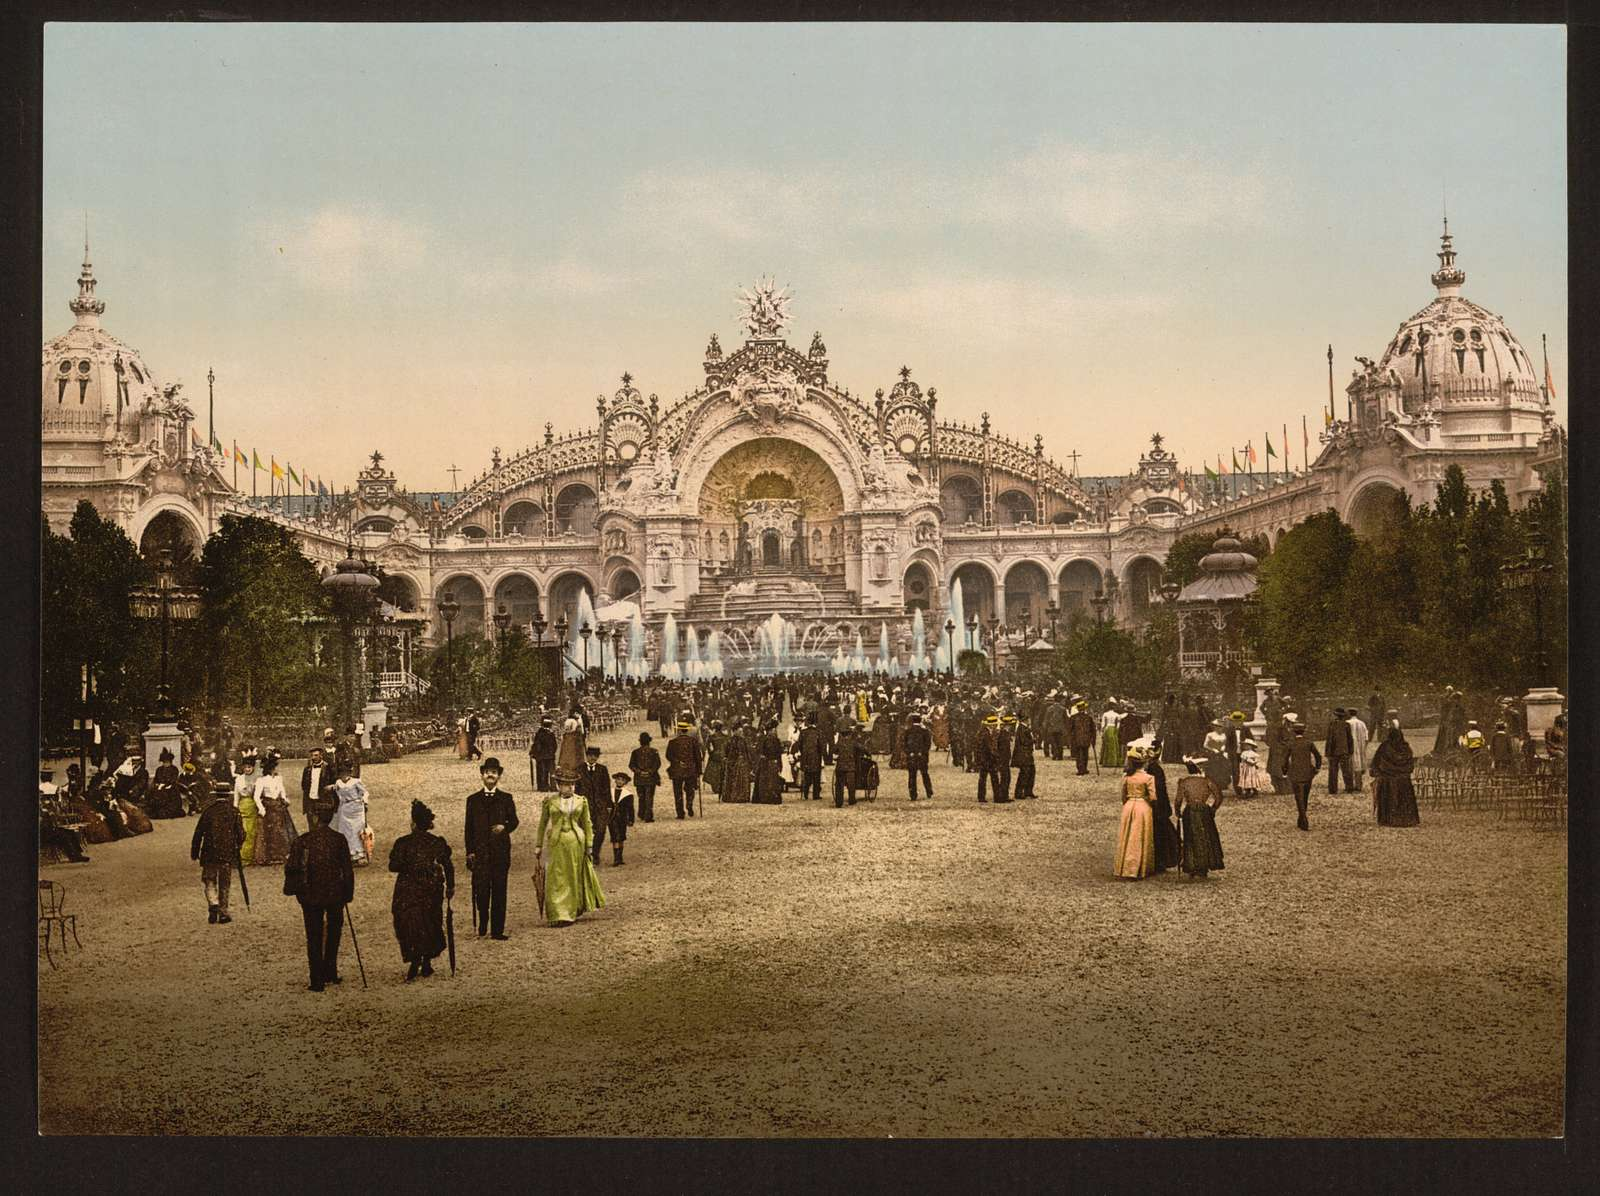 [Le Chateau d'eau and plaza, with Palace of Electricity, Exposition Universelle, 1900, Paris, France]